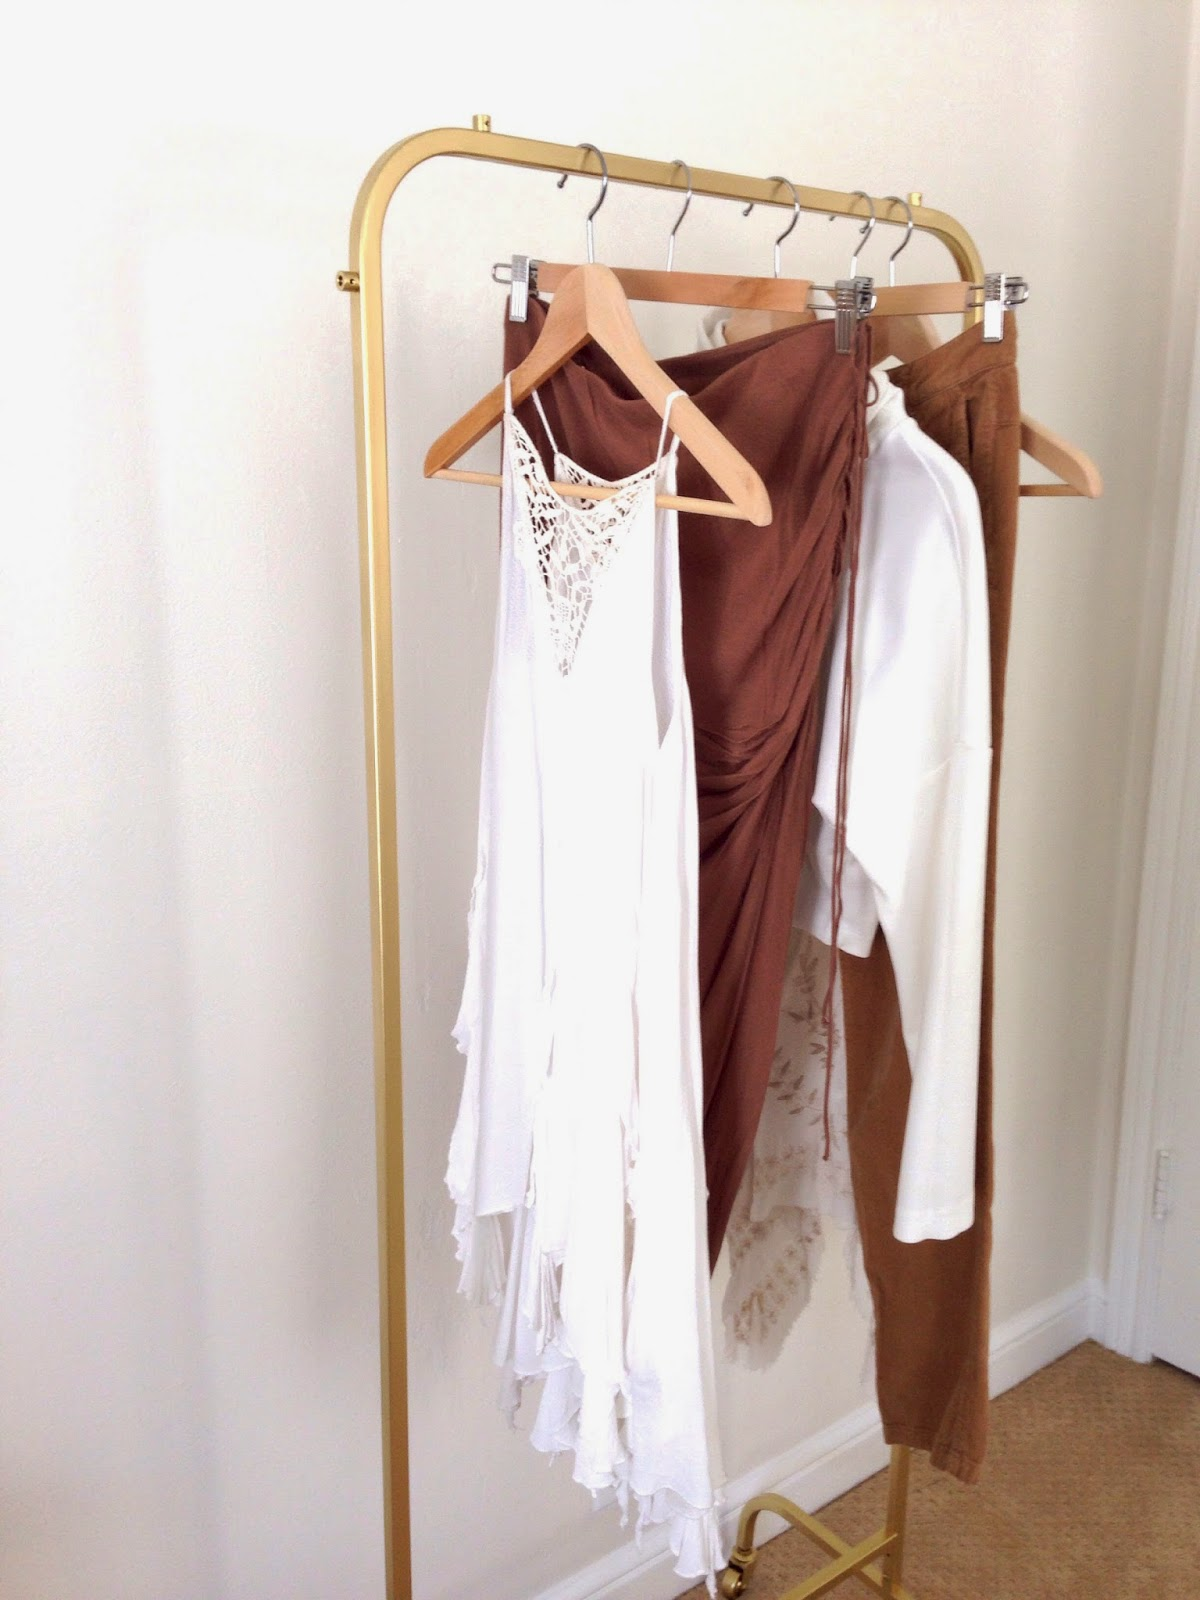 How To Get Eggshell Paint Out Of Clothes